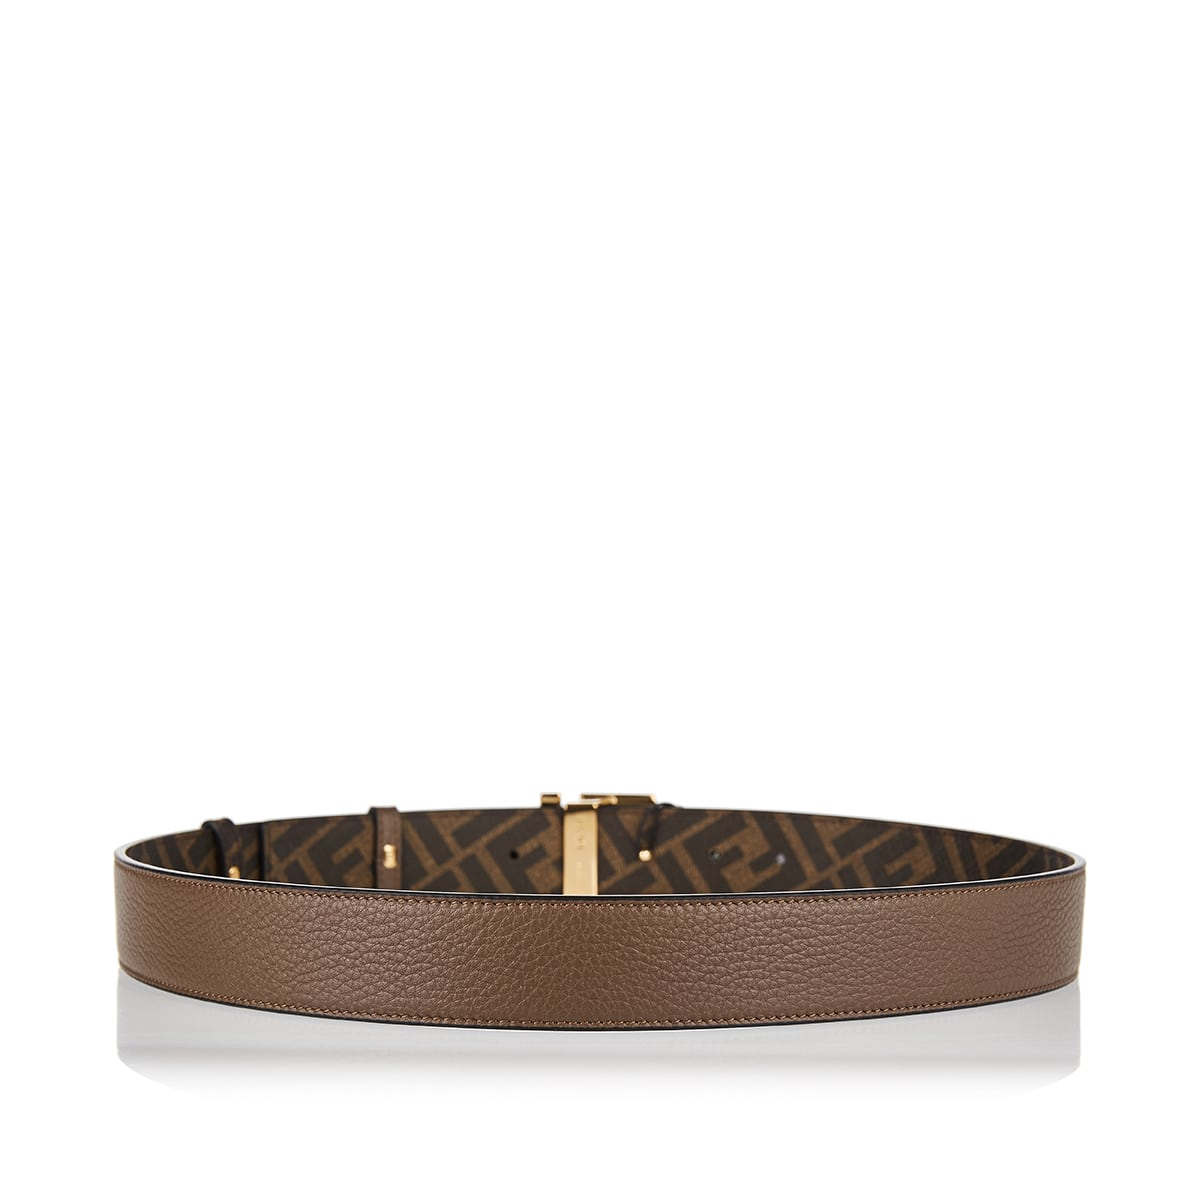 FF reversible leather belt